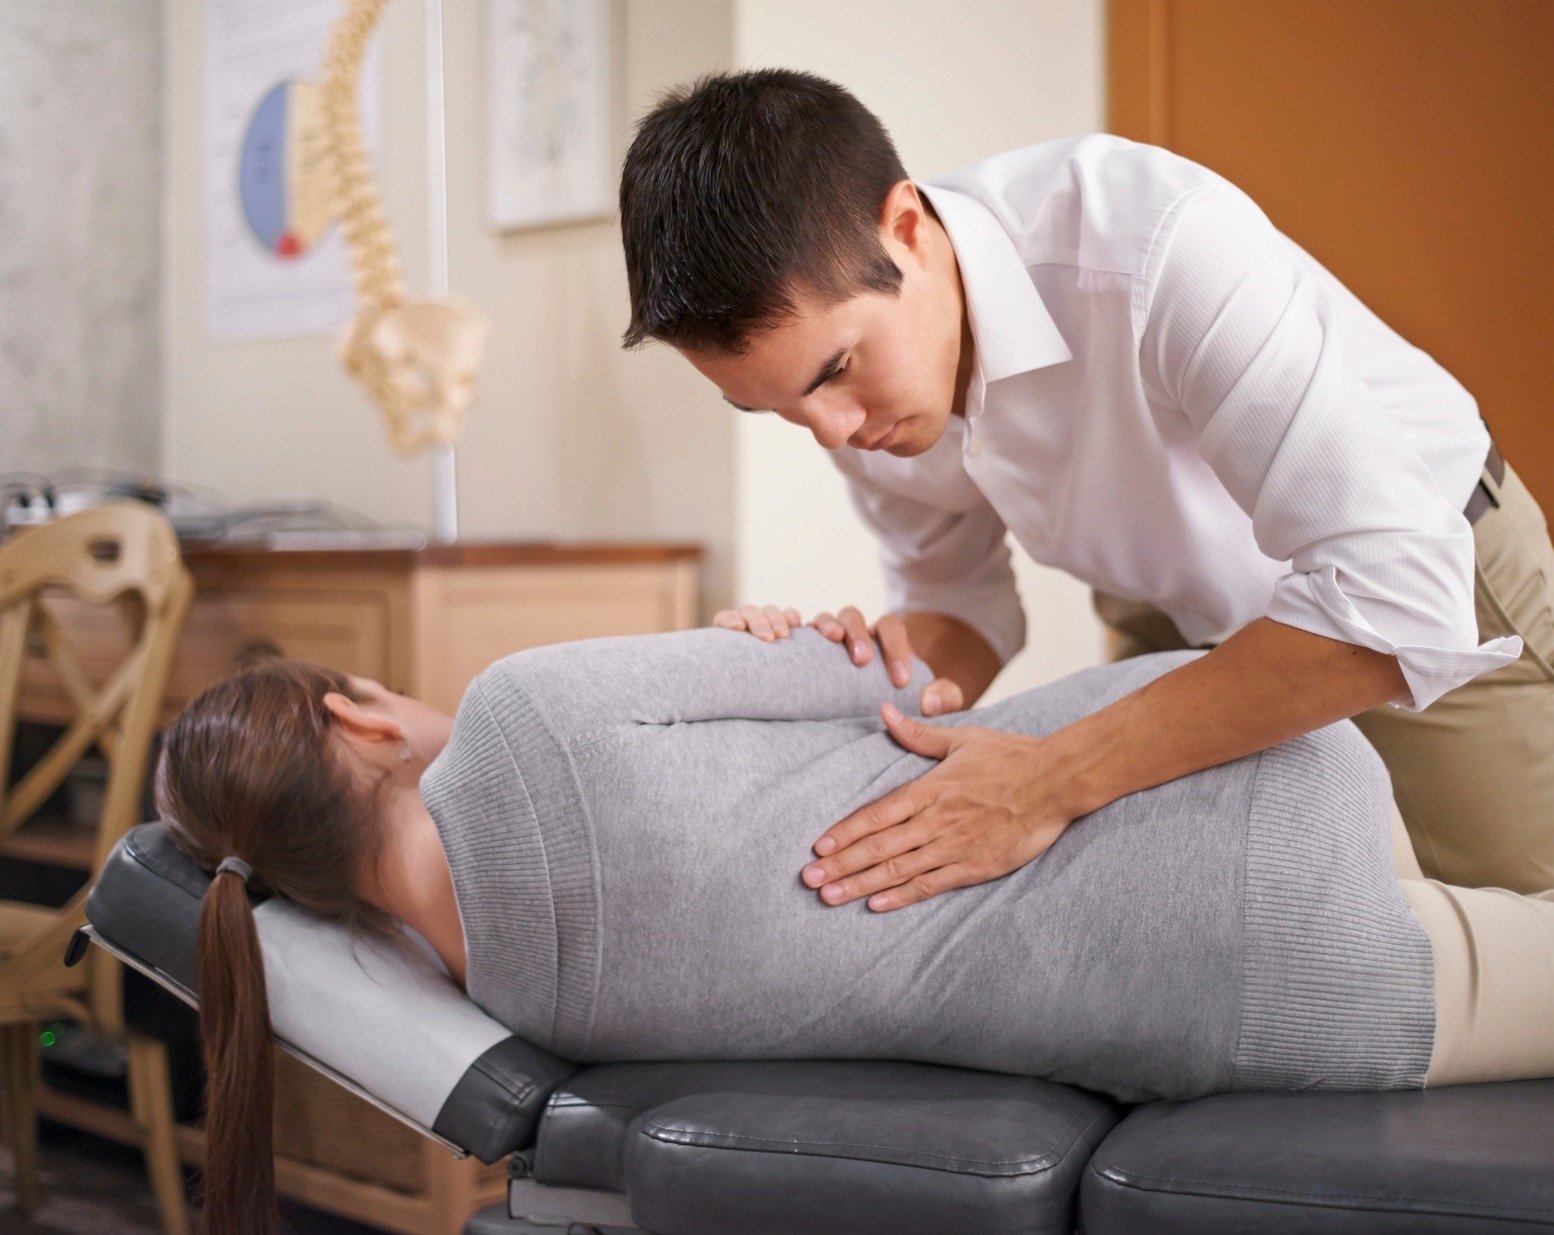 6 Reasons To See A Chiropractor After Your Car Accident